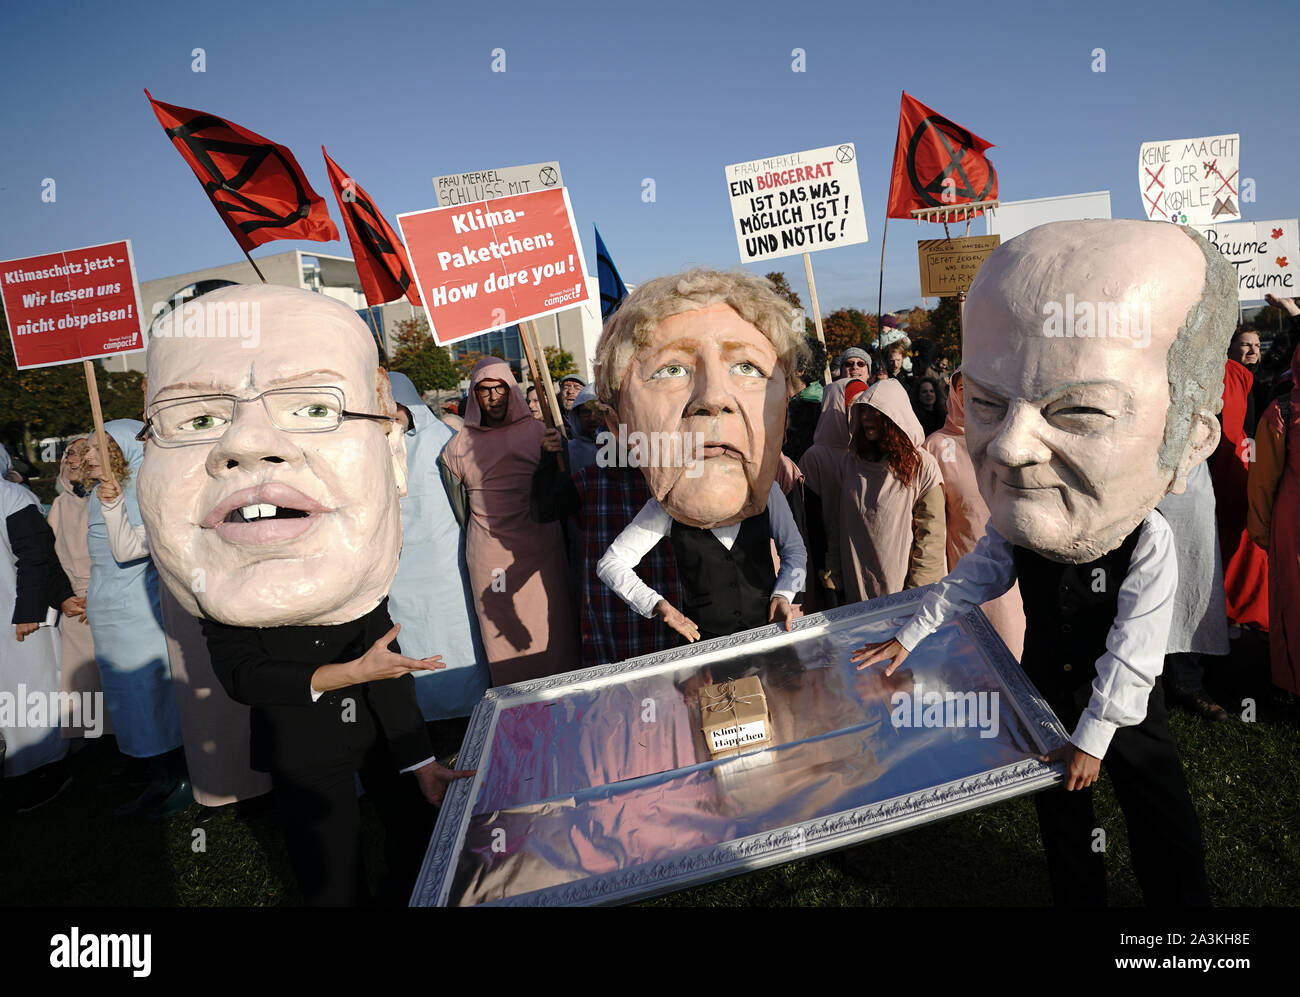 Berlin, Germany. 09th Oct, 2019. Campact activists are wearing masks, the Economics Minister Altmaier, Chancellor Merkel and Finance Minister Scholz are showing a small climate package on a silver platter during the Federal Cabinet meeting in front of the Chancellery. Credit: Michael Kappeler/dpa/Alamy Live News Stock Photo